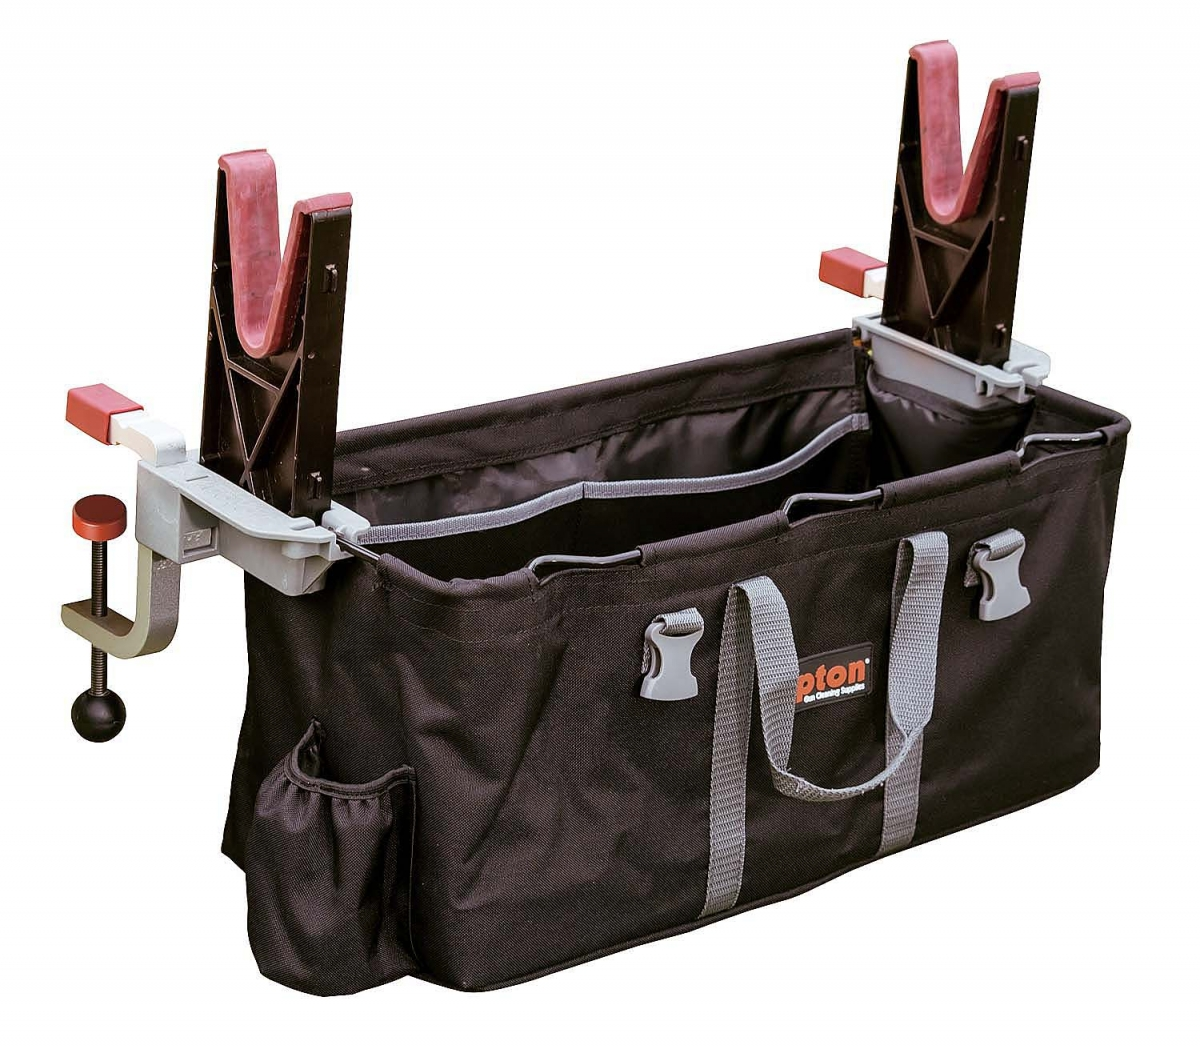 The Tipton® Transporter Range Vise is the perfect addition to your next trip to the range